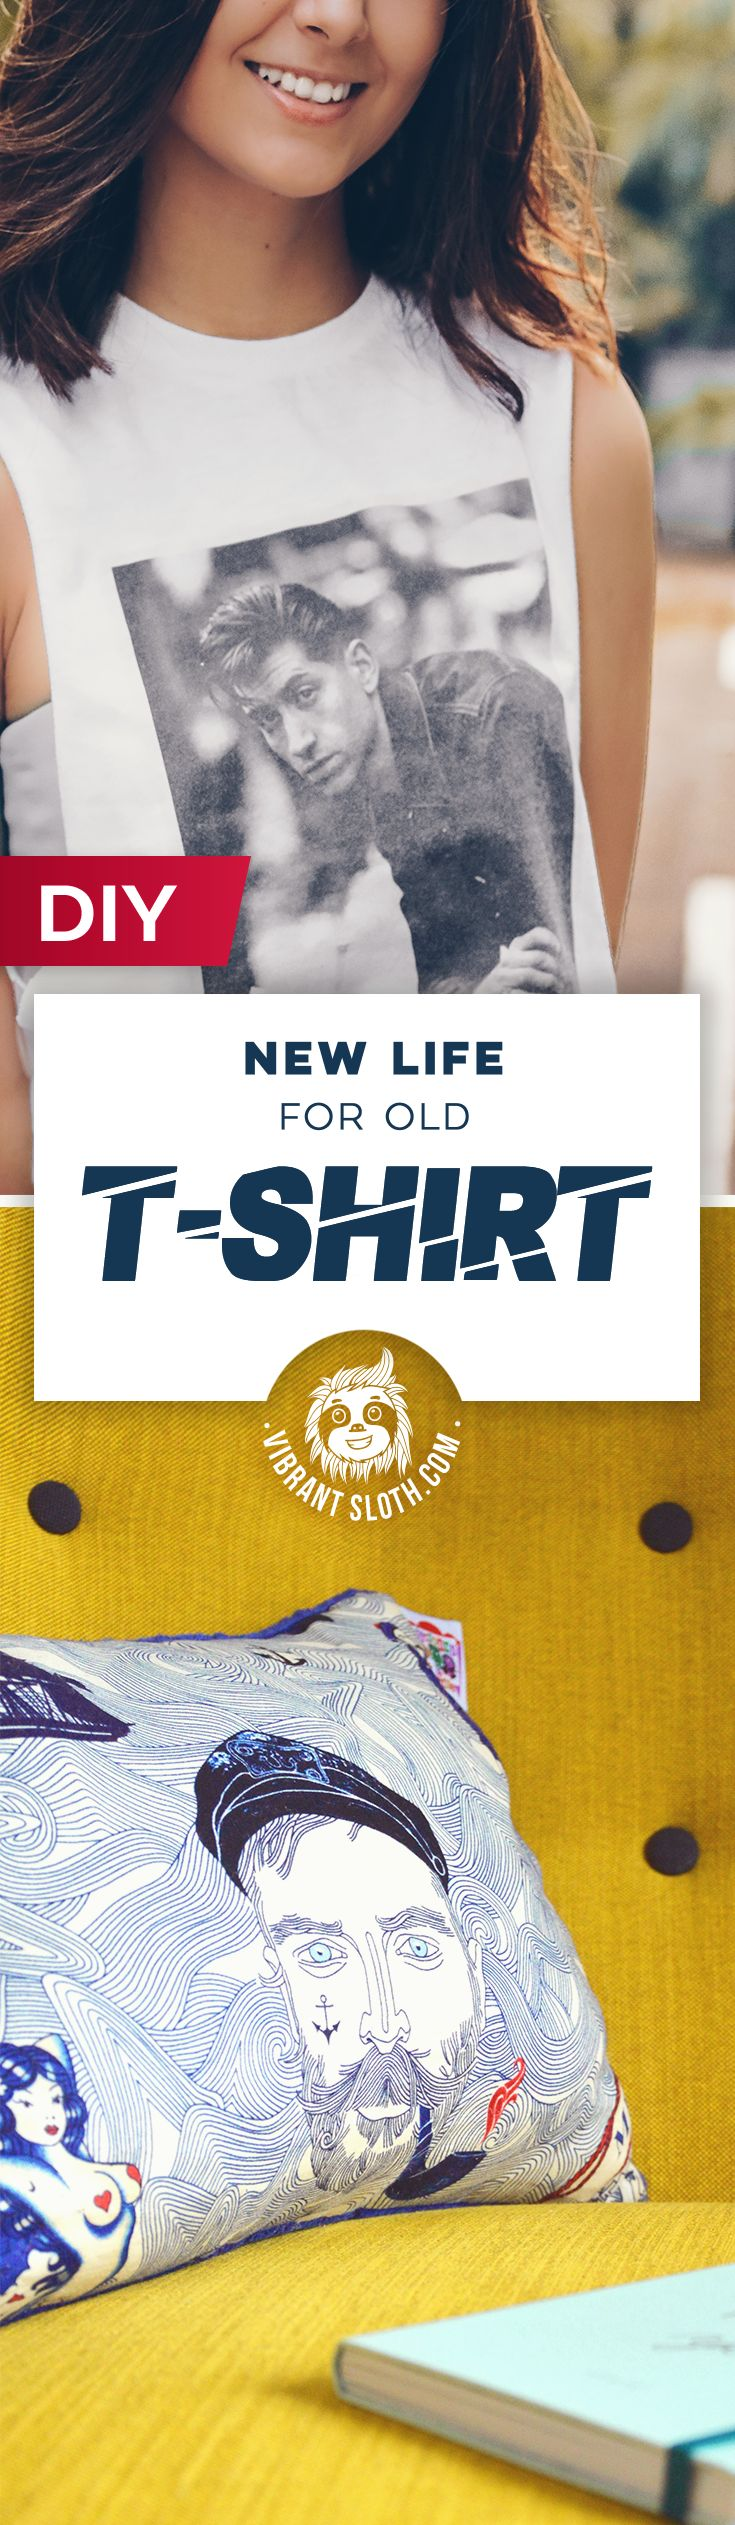 Old T-shirt ideas, Old T-shirt crafts, Old T-shirts DIY, What to do old T-shirts, T-Shirt quilt, T-shirt carpet, Framed T-shirt, Renew old T-shirt